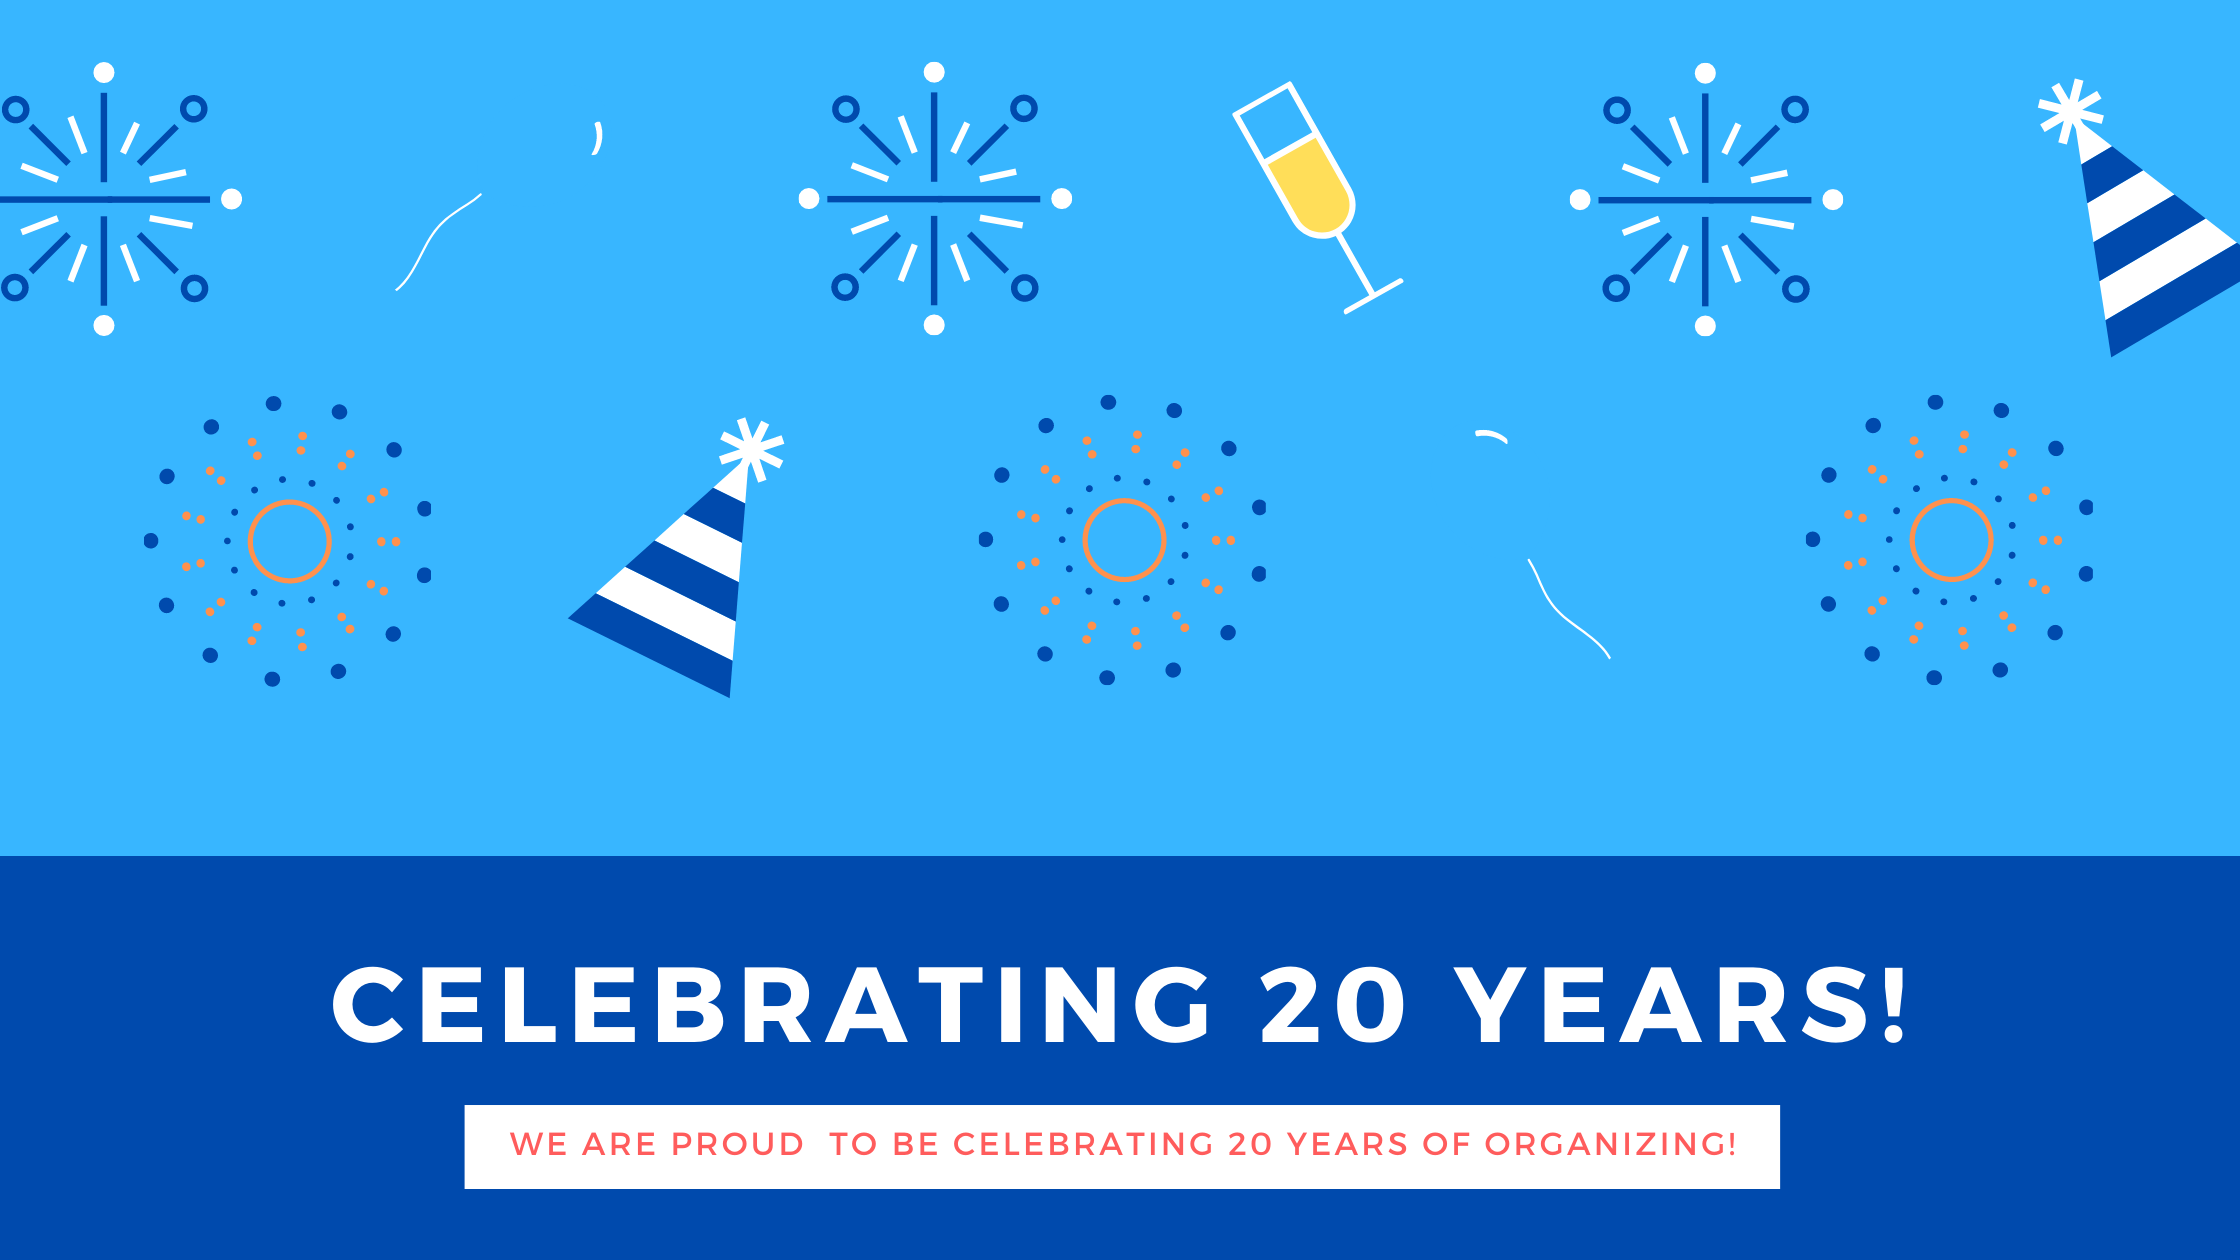 Celebrating 20 Years of Organizing!